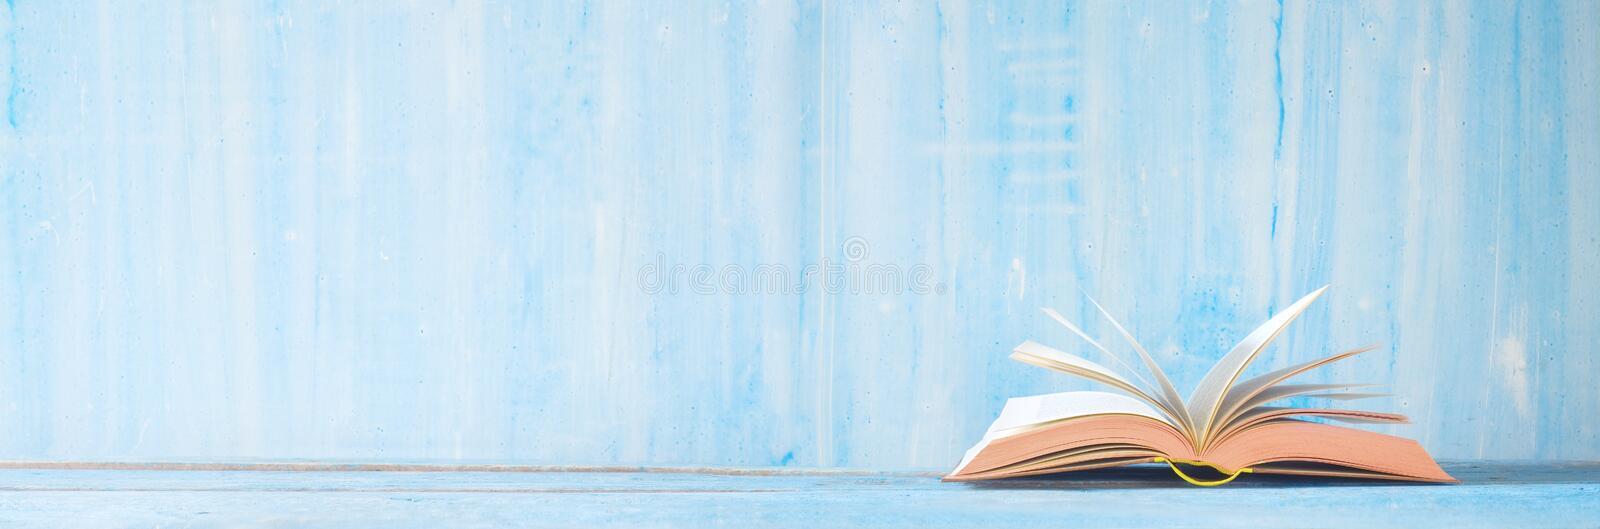 Open book, close up on blue grungy background,reading, education, literature,learning, good copy space royalty free stock photos